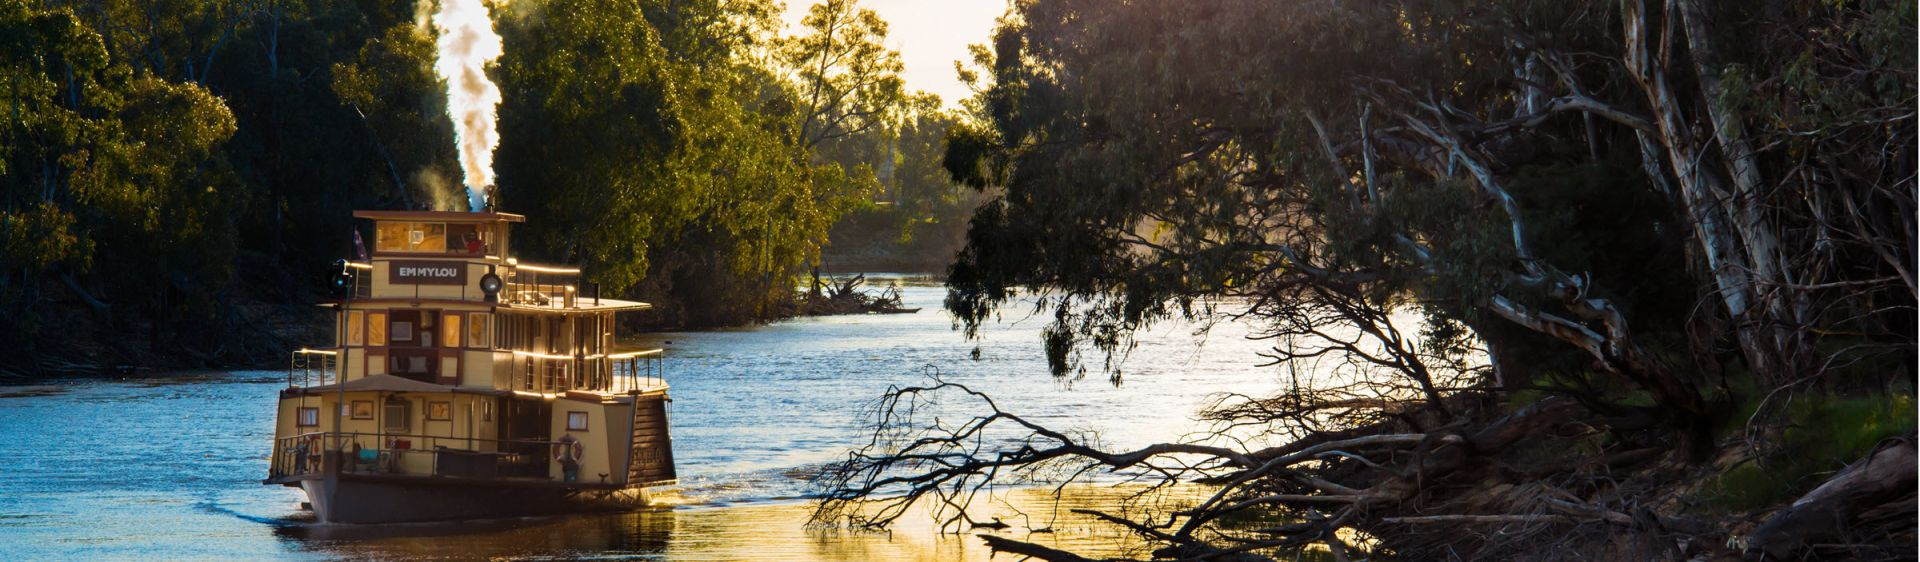 The Murray River, Echuca